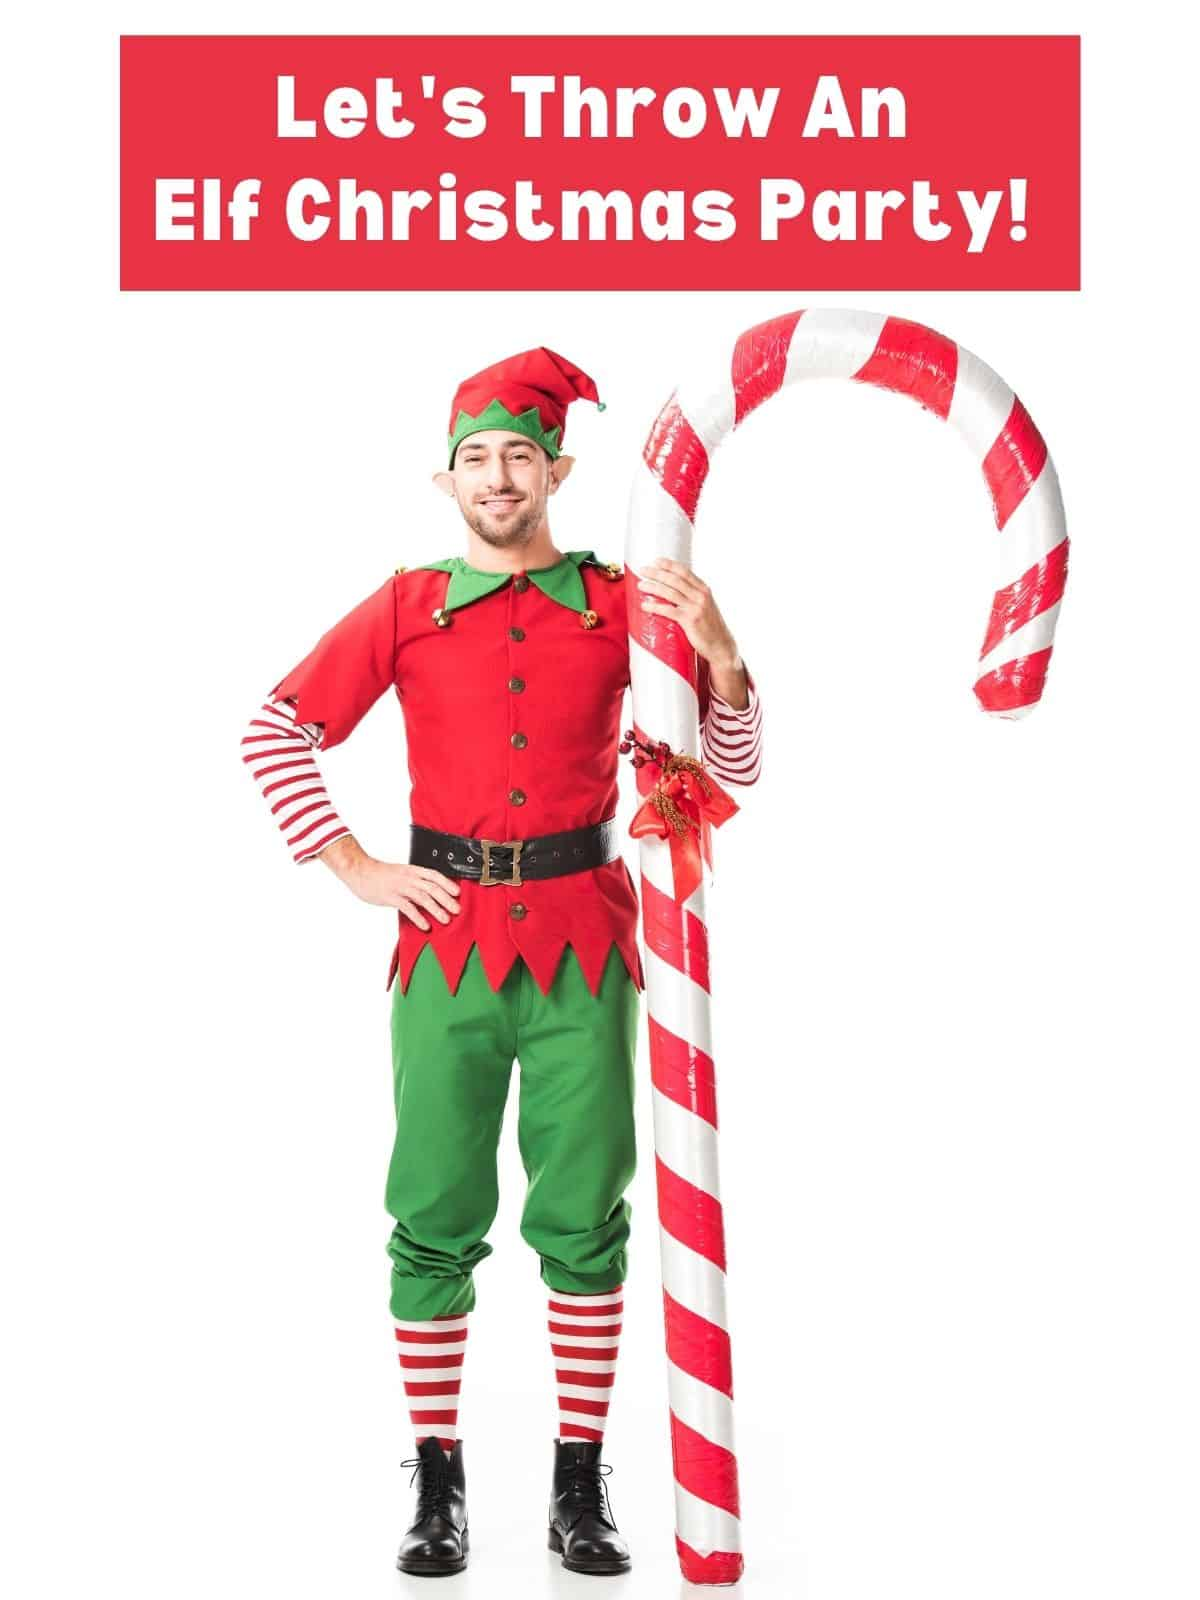 elf holding a candy cane